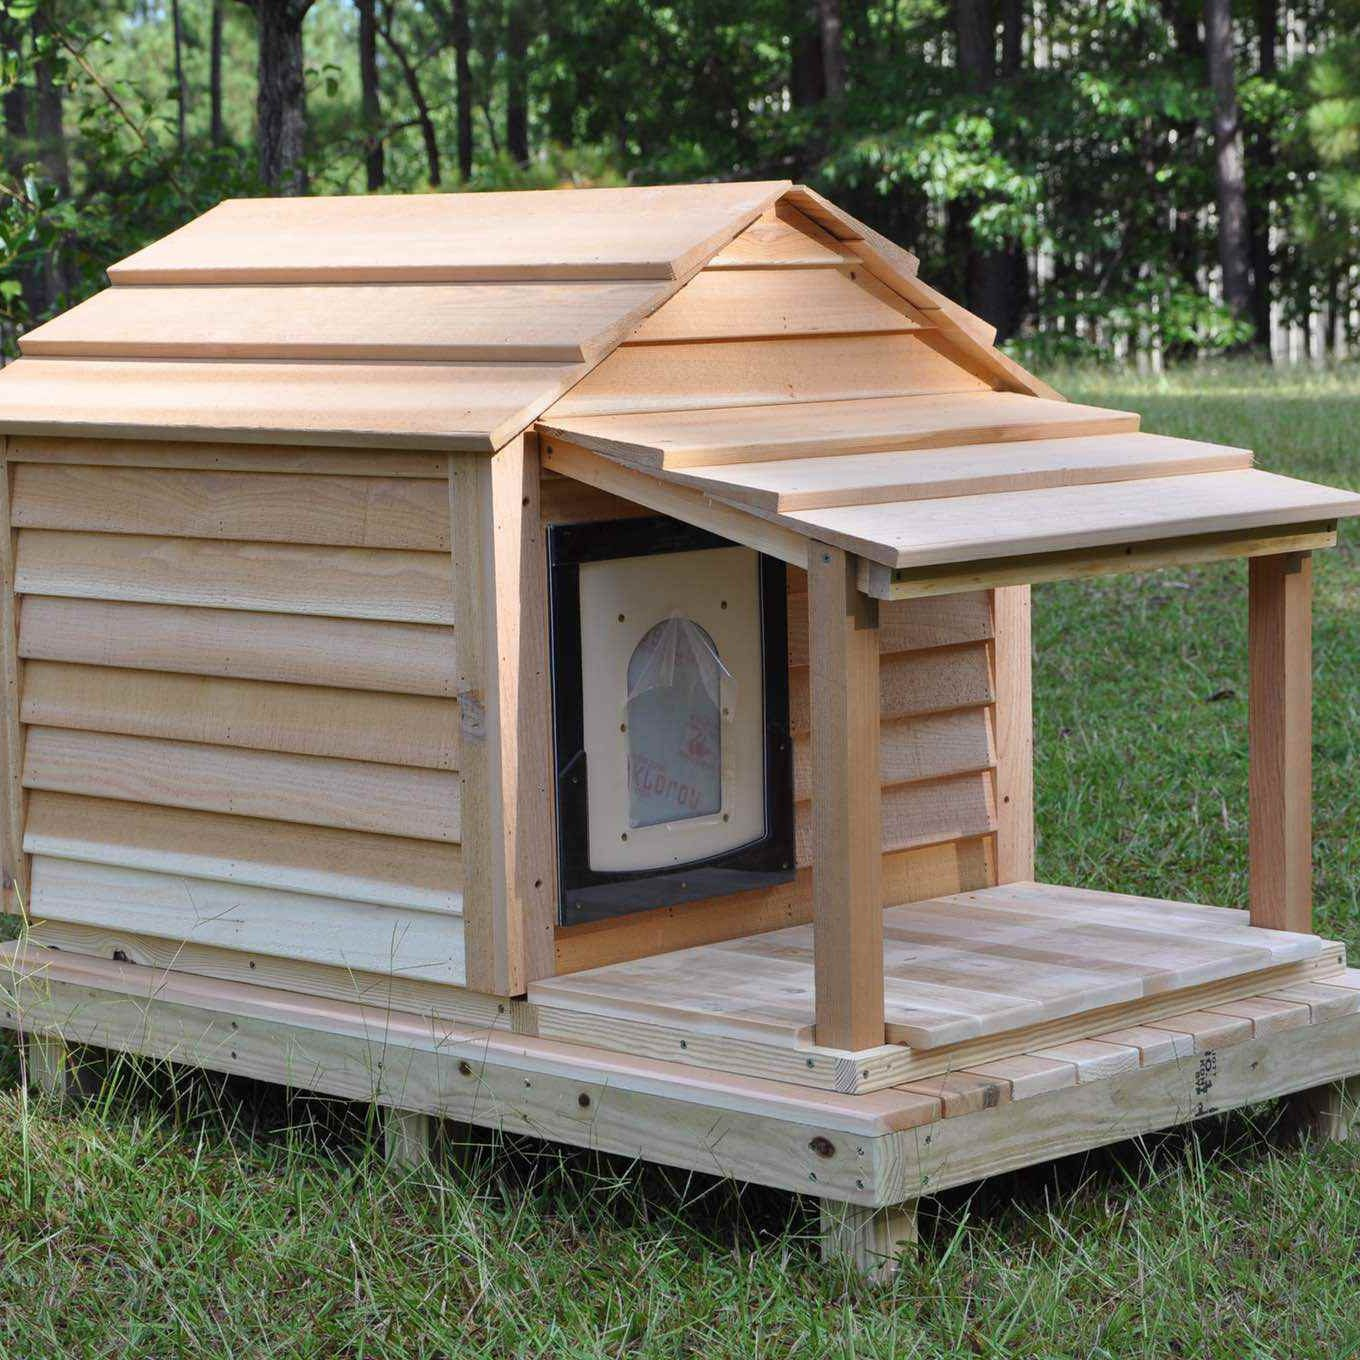 medium dog house with porch and deck, clean-out door and optional seal safe door